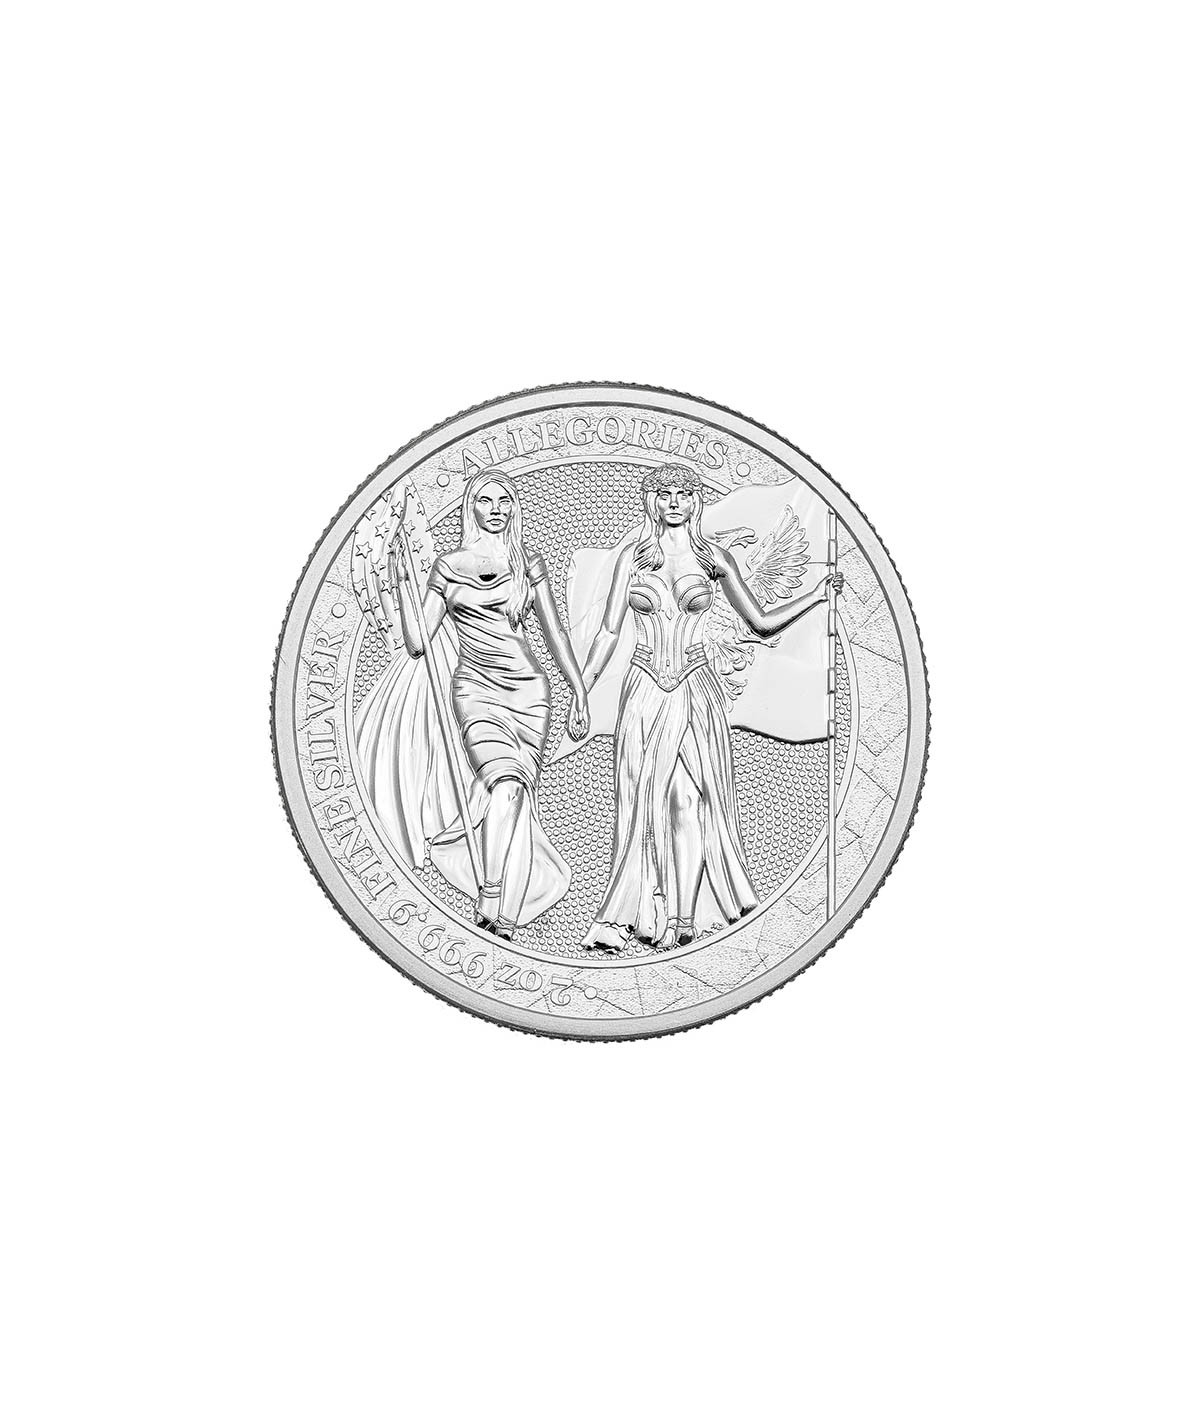 2oz Columbia & Germania Silver Coin from 2019 - The Allegories serie